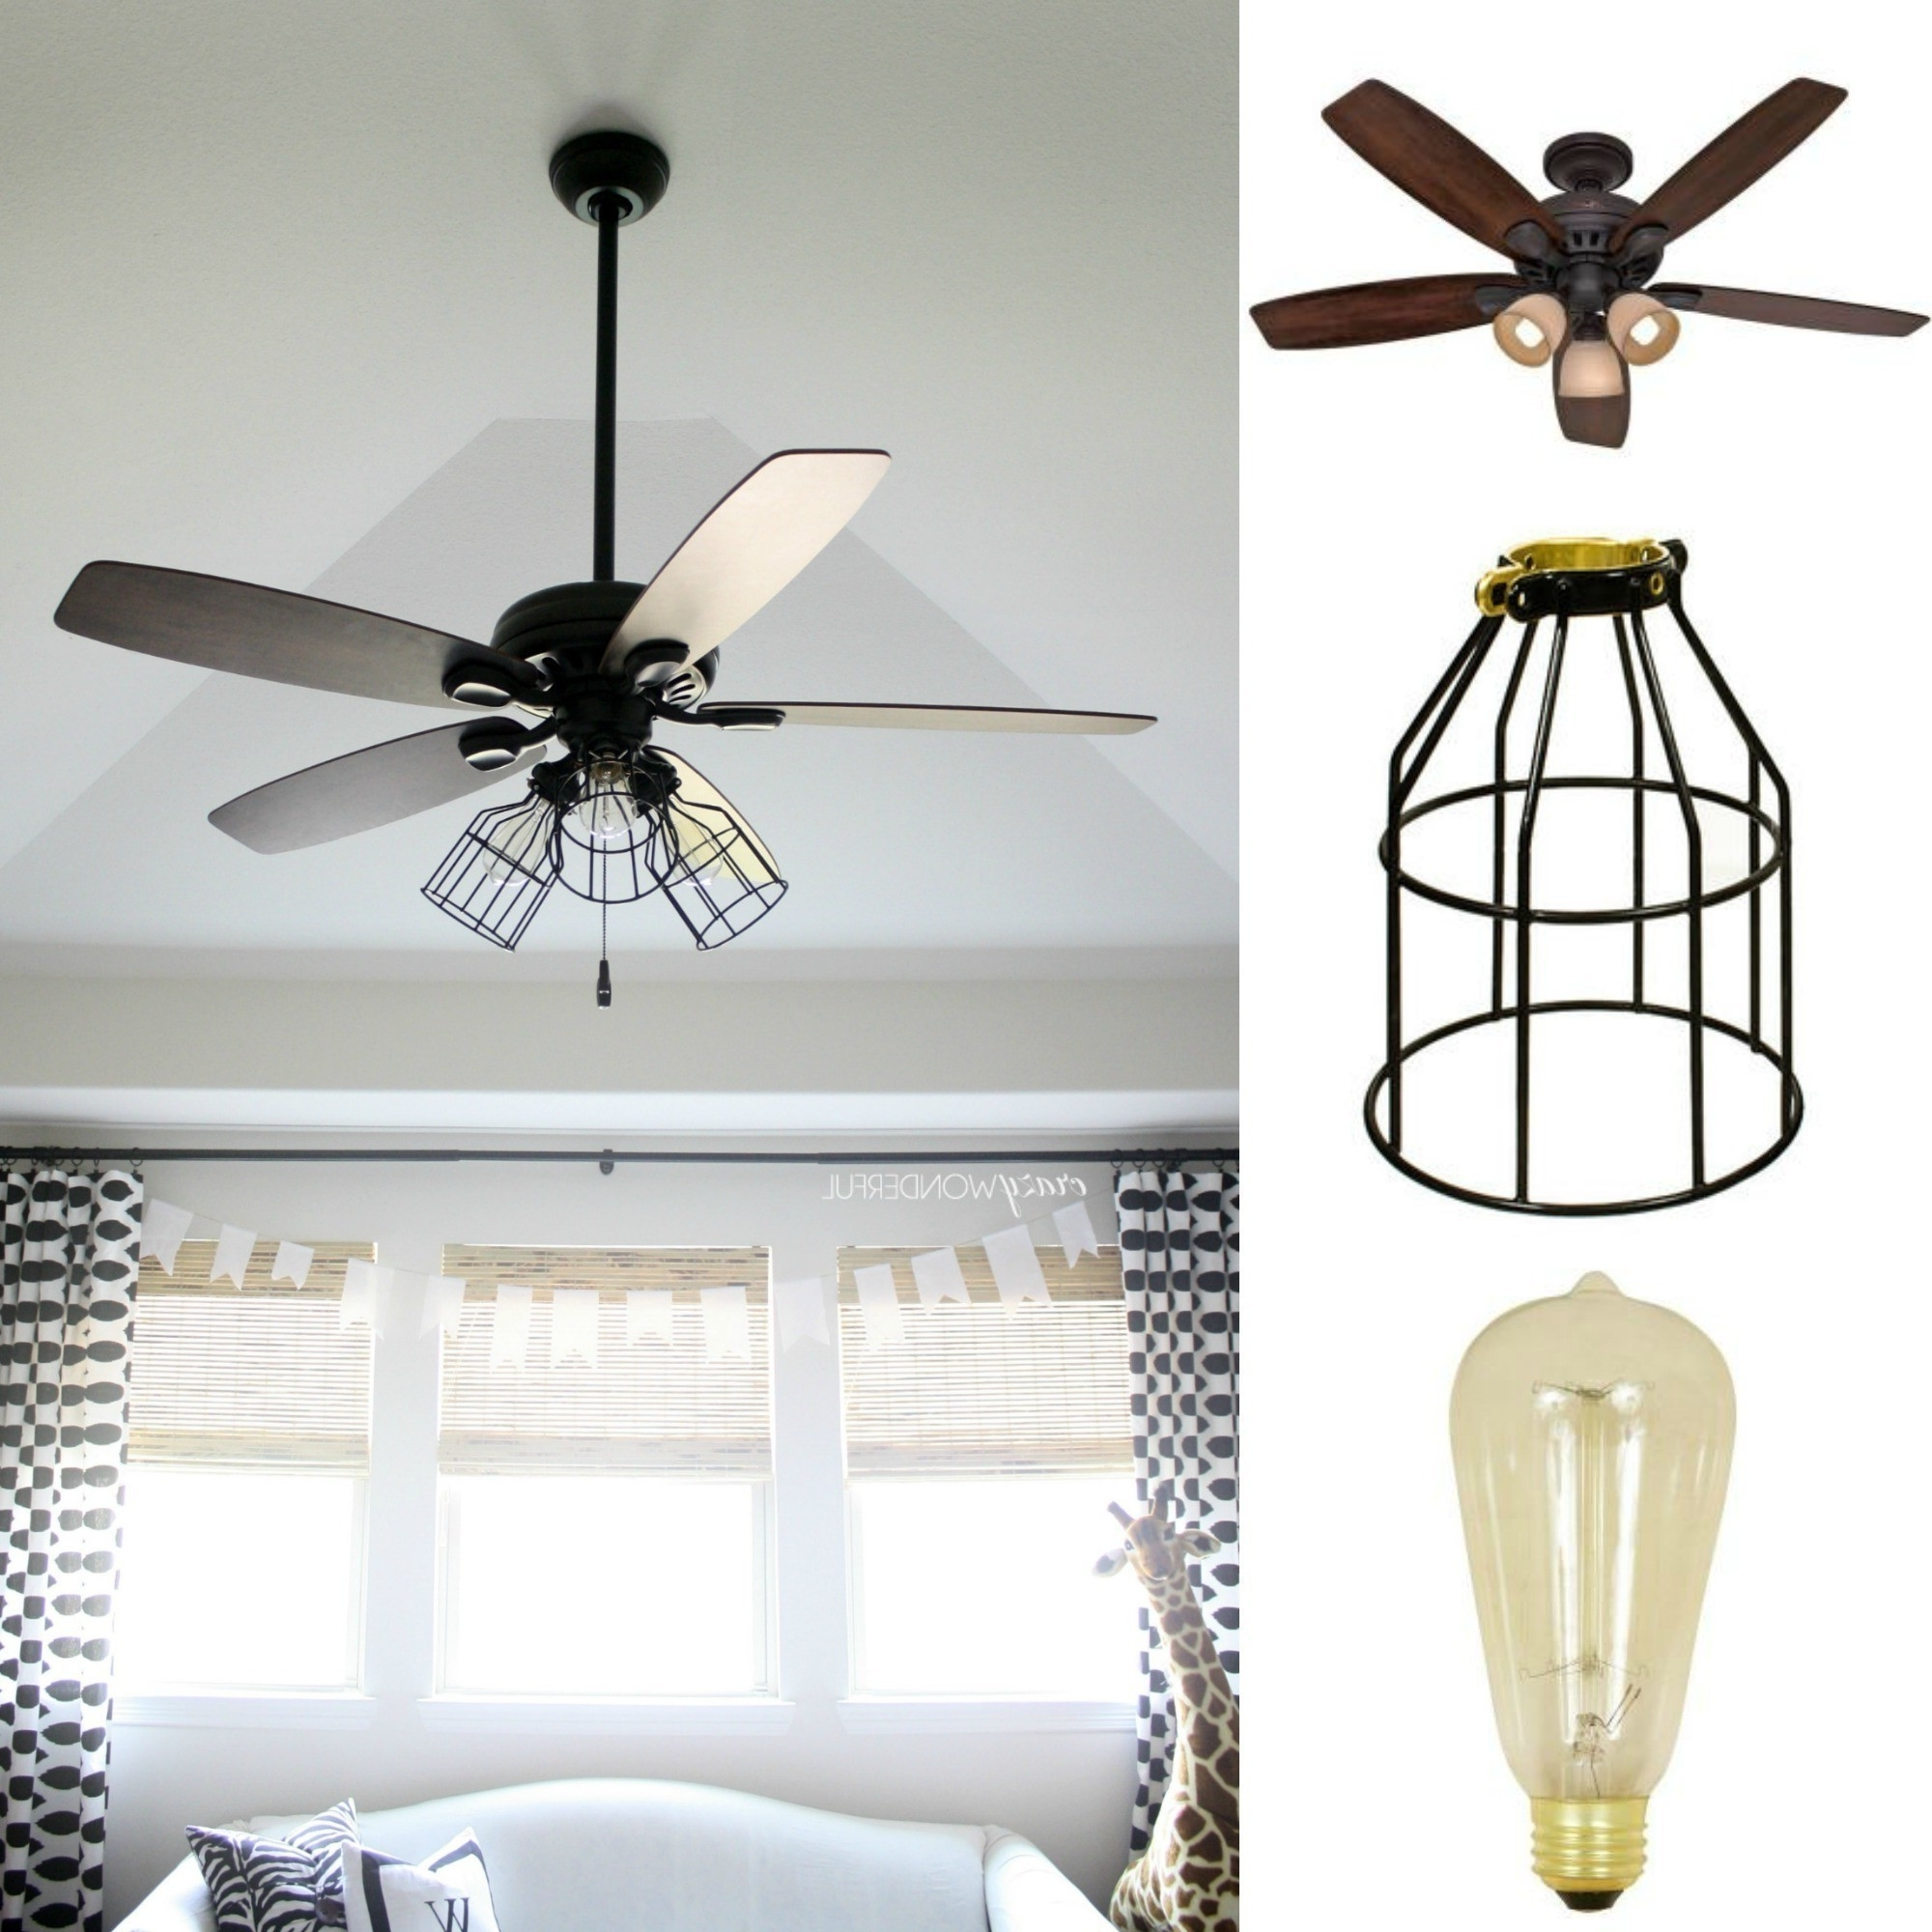 Outdoor Caged Ceiling Fans With Light Within Current Diy Cage Light Ceiling Fan · A Hanging Light · Home + Diy On Cut Out (View 17 of 20)